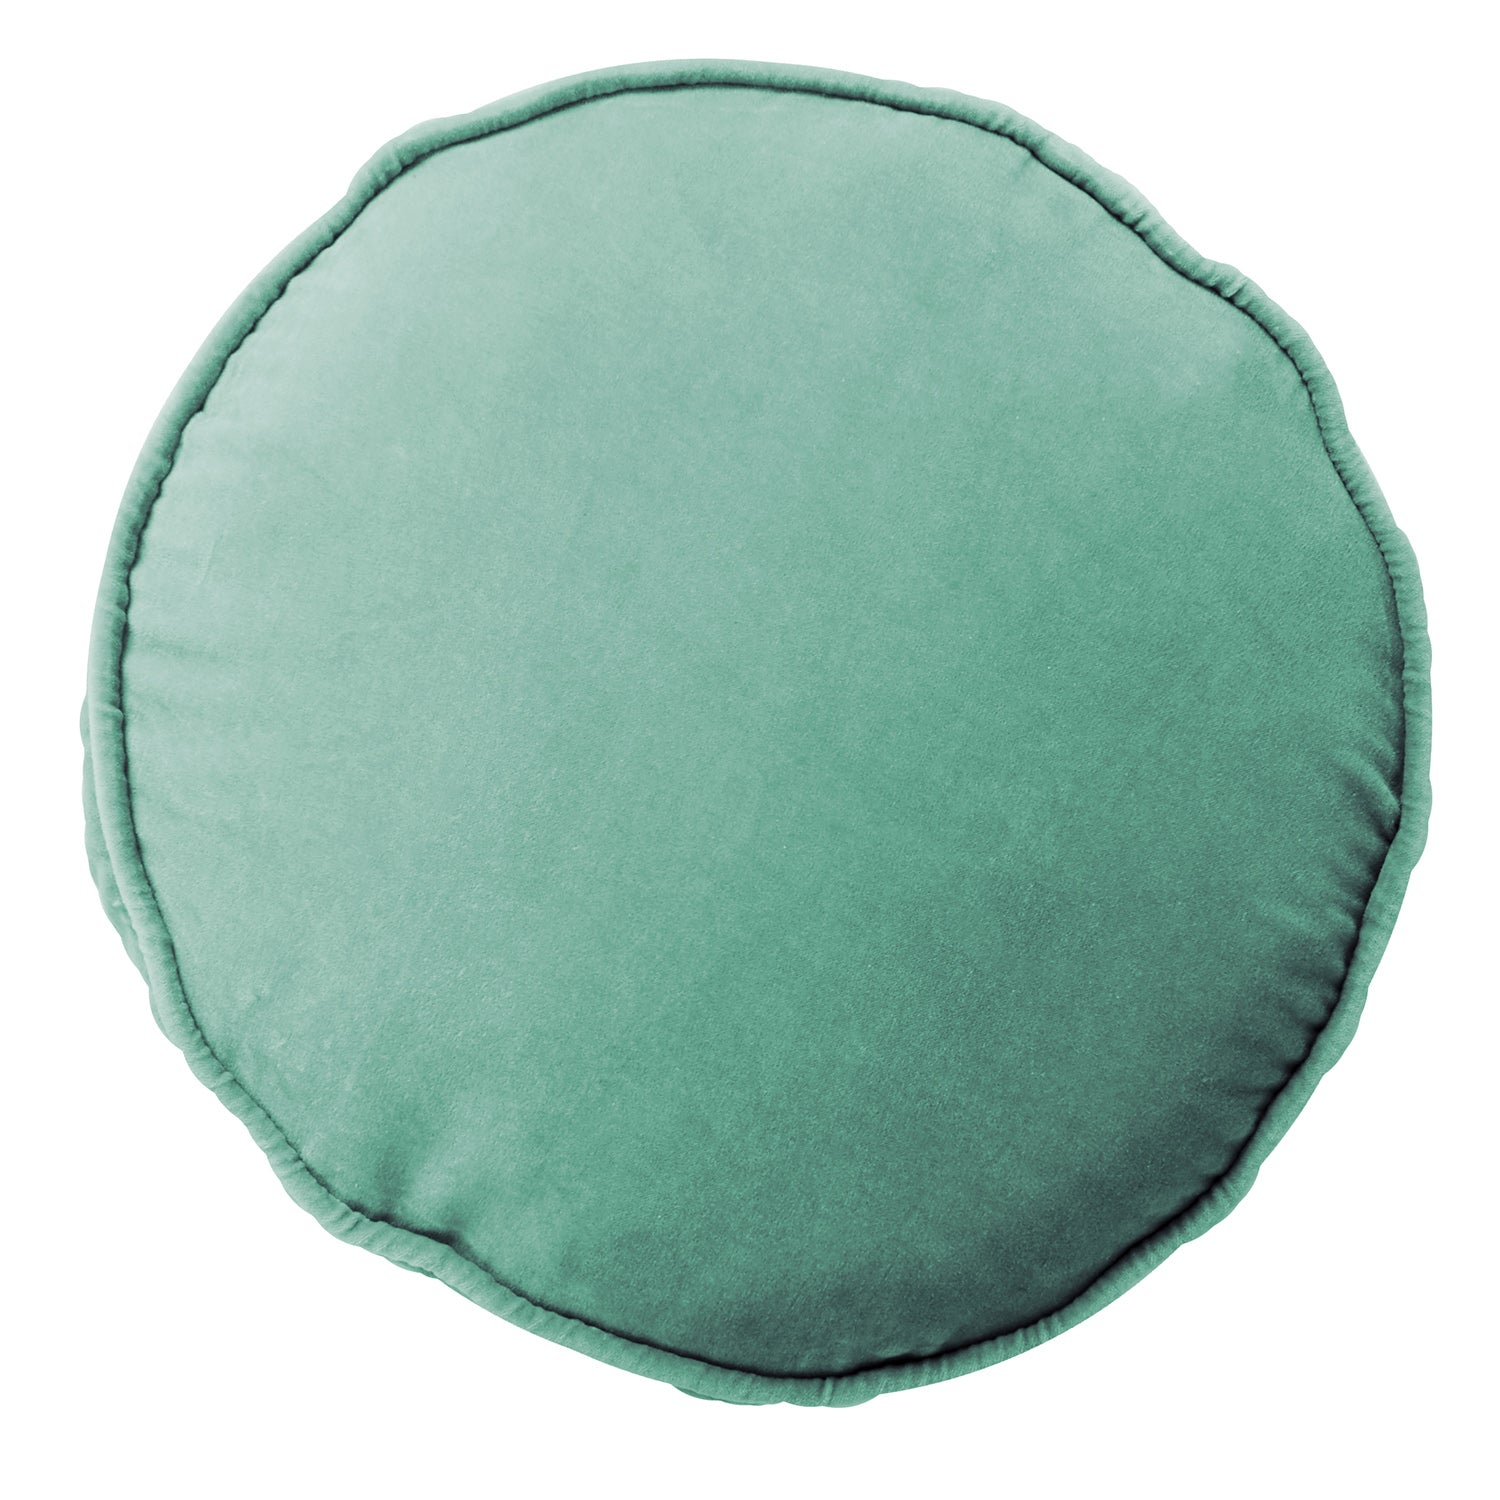 Kip & Co Velvet Pea Cushion Eucalyptus - The Artisan Storeroom